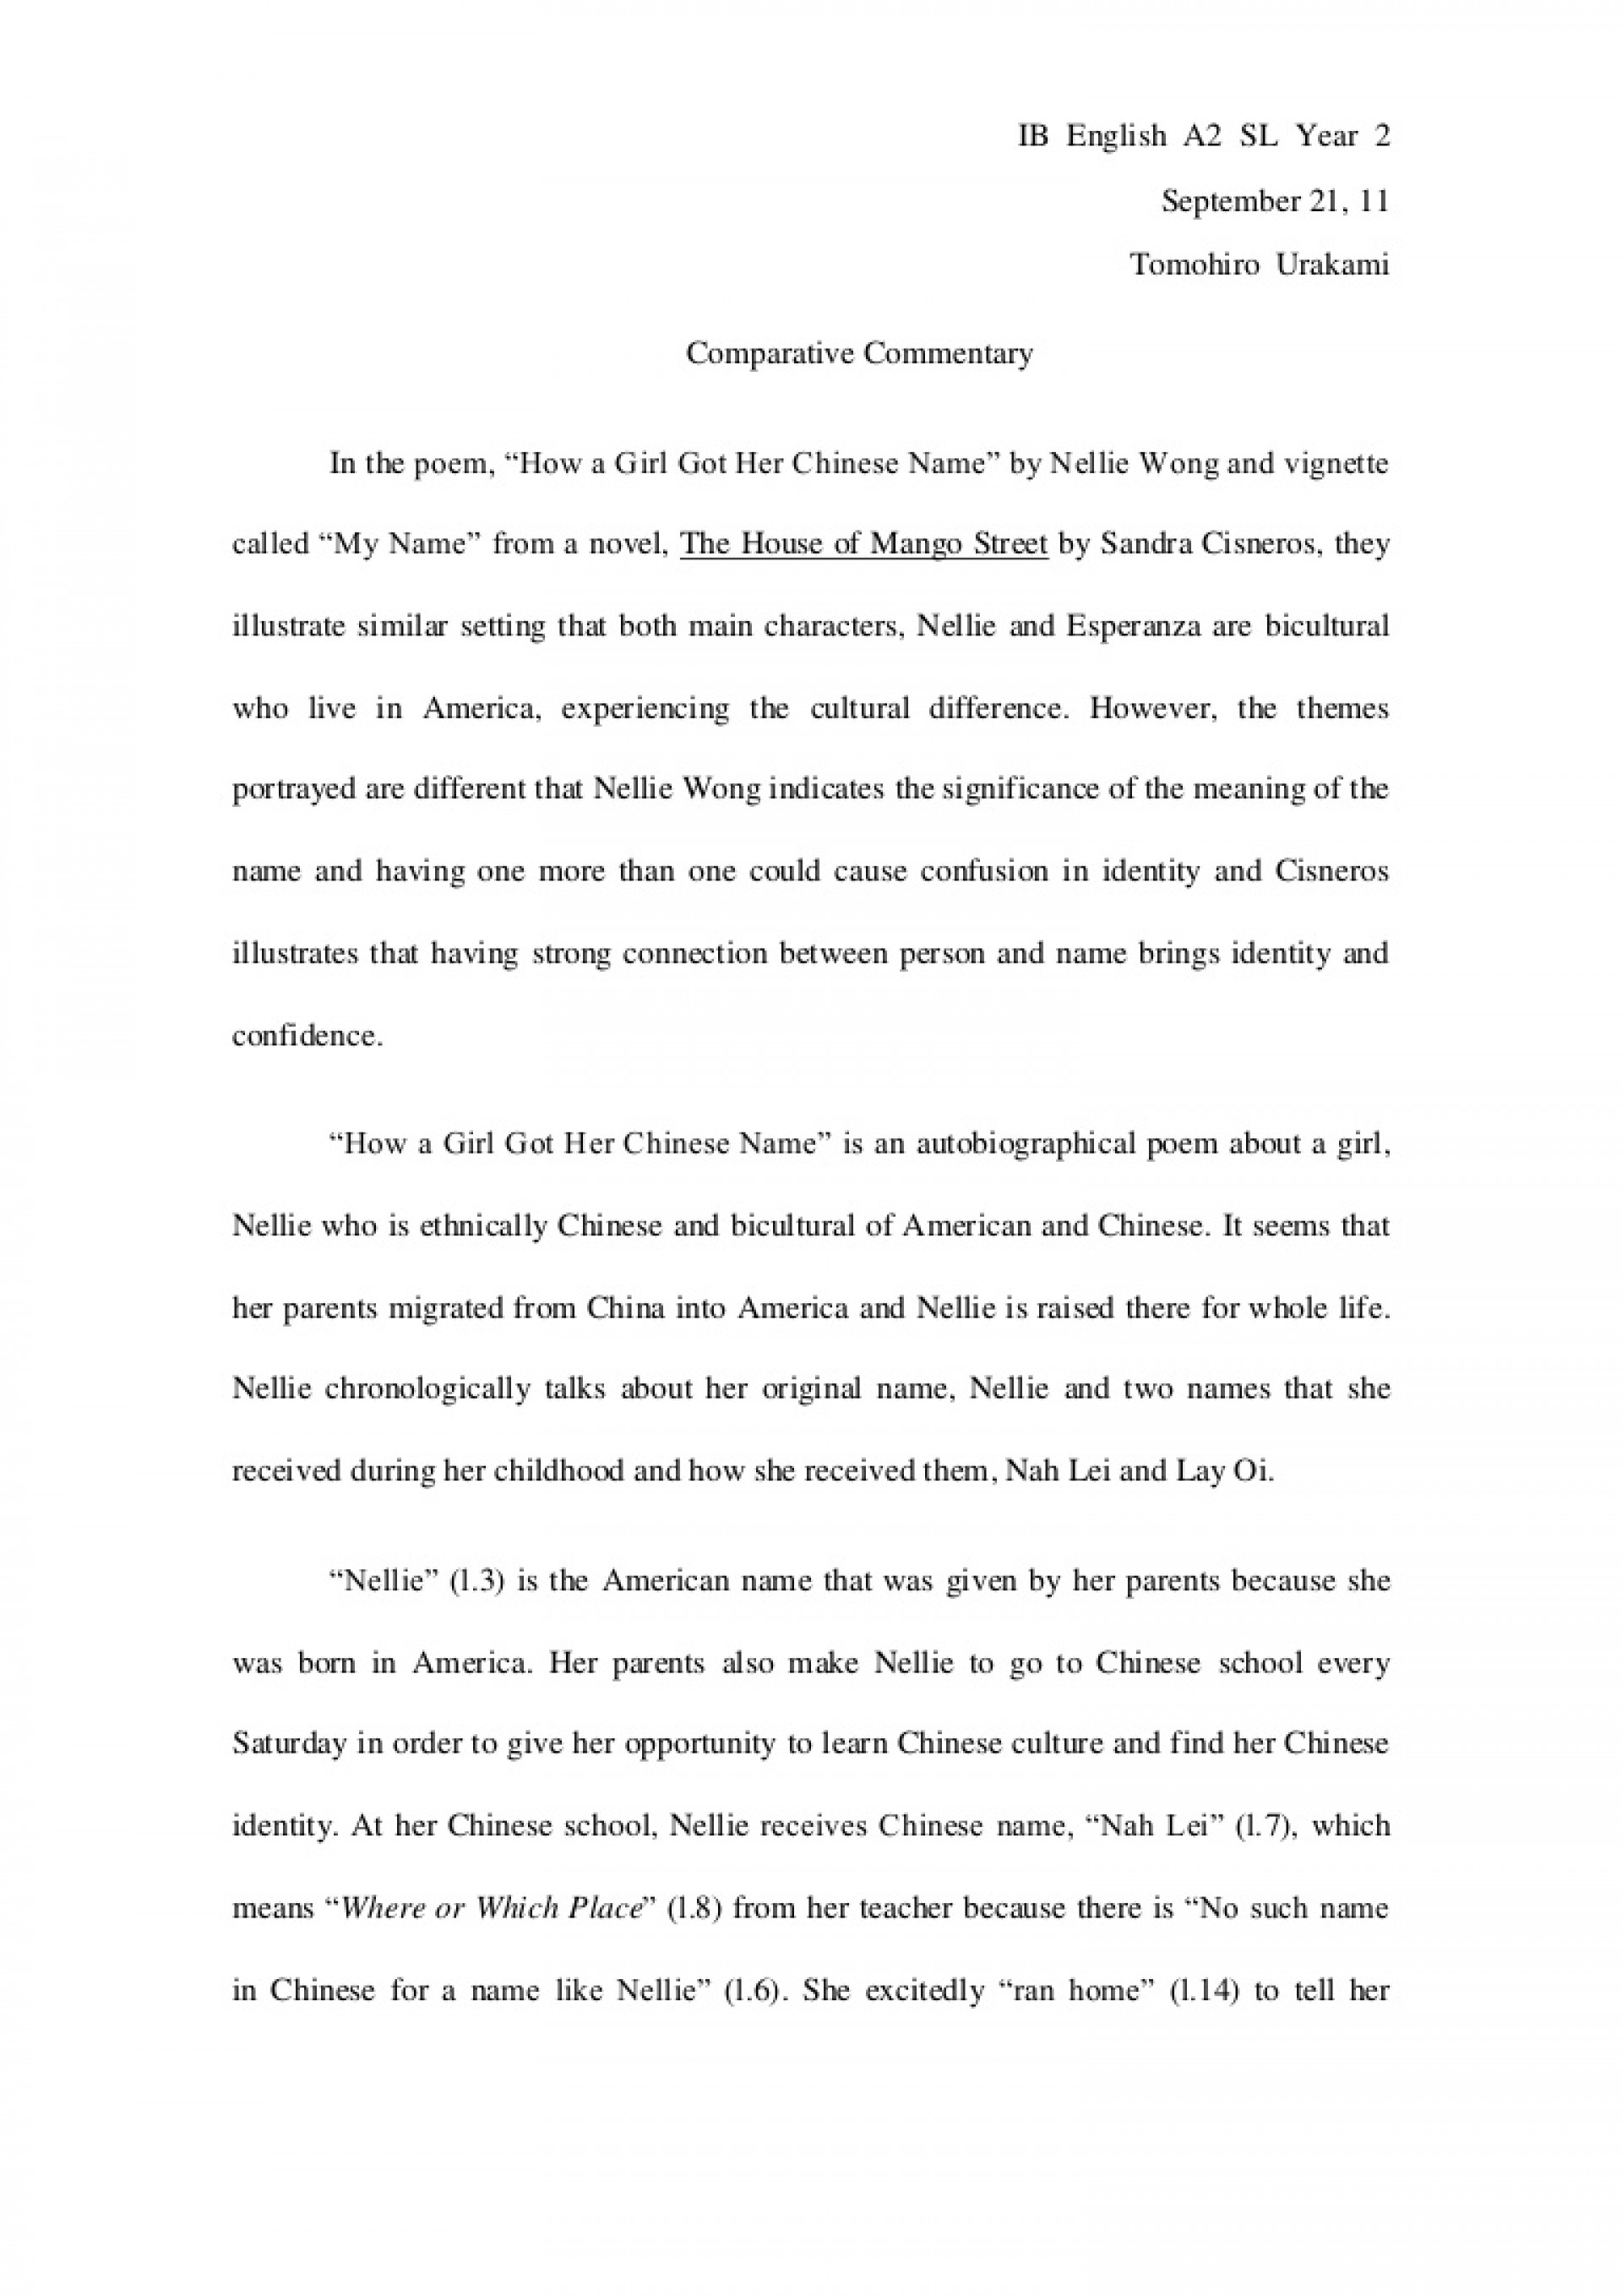 003 Comparativeessaydraft Phpapp02 Thumbnail Essay Example Comparative Sensational Essays Sample Of On Poems Vce The Crucible And Year Wonders 1920